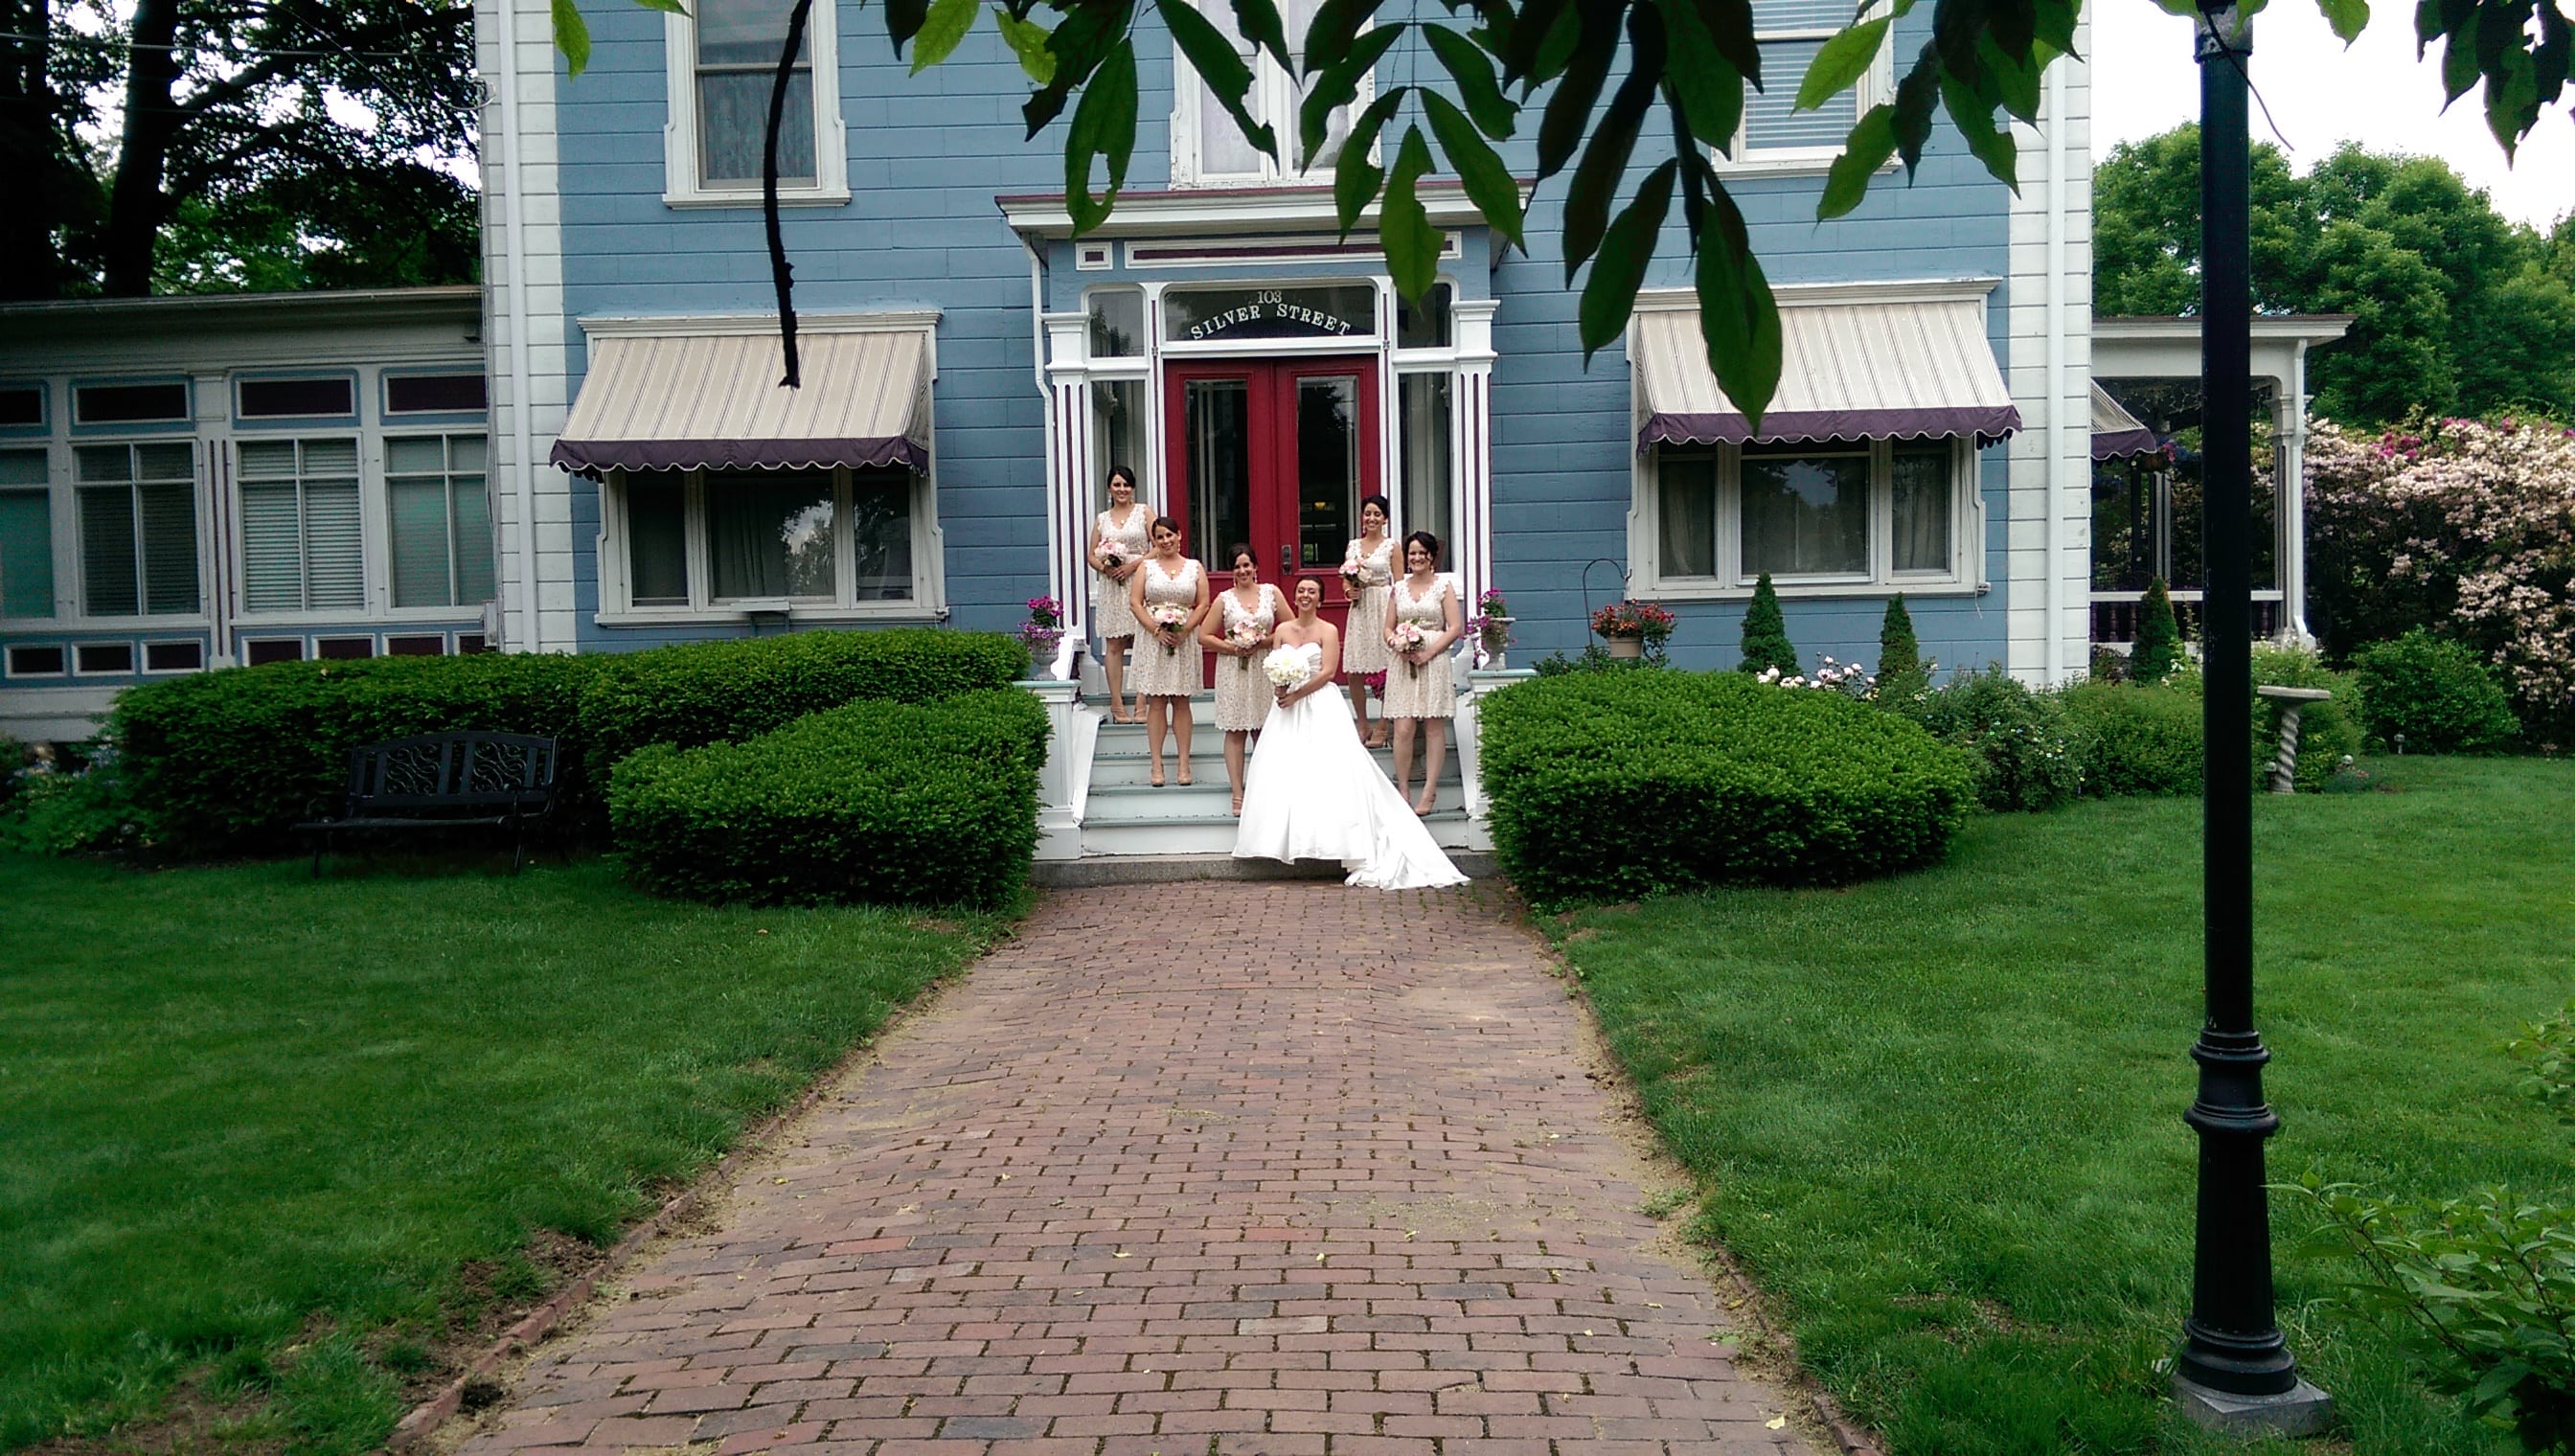 Here is an image of a brida party posing on the front steps of our hotel dover nh.